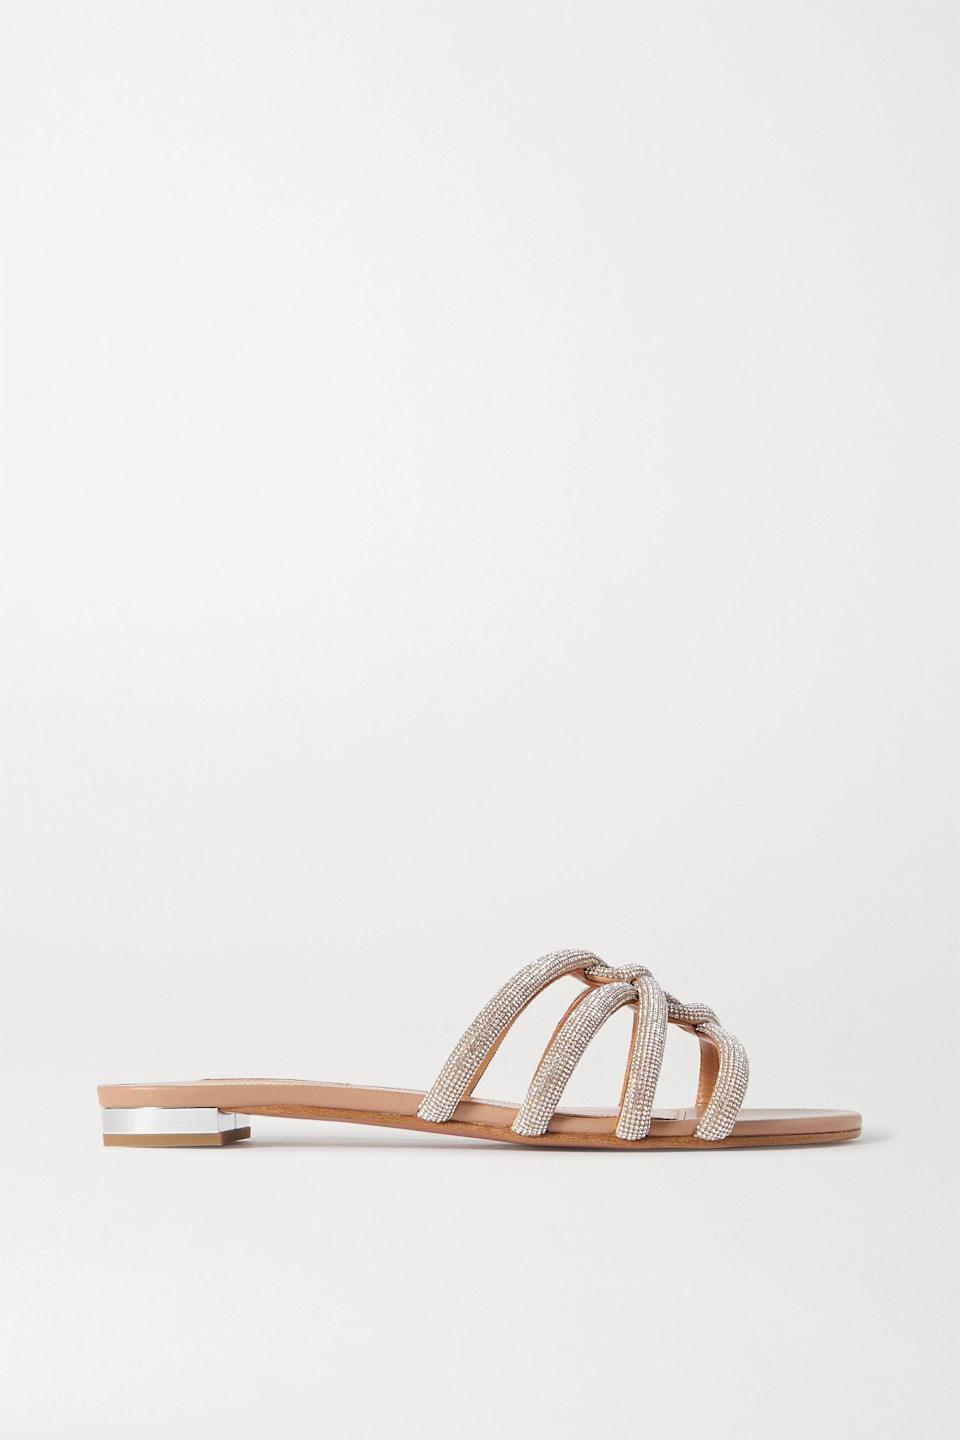 """<p><strong>Aquazzura</strong></p><p>net-a-porter.com</p><p><strong>$895.00</strong></p><p><a href=""""https://go.redirectingat.com?id=74968X1596630&url=https%3A%2F%2Fwww.net-a-porter.com%2Fen-us%2Fshop%2Fproduct%2Faquazzura%2Fmoondust-crystal-embellished-leather-slides%2F1230198&sref=https%3A%2F%2Fwww.harpersbazaar.com%2Fwedding%2Fbridal-fashion%2Fg36113322%2Fwedding-flats-for-brides%2F"""" rel=""""nofollow noopener"""" target=""""_blank"""" data-ylk=""""slk:SHOP NOW"""" class=""""link rapid-noclick-resp"""">SHOP NOW</a></p><p>For rehearsal dinners and brunches that don't require formality but need to feel a bit more dressed up, opt for an easy slide with a bit of sparkle.</p>"""